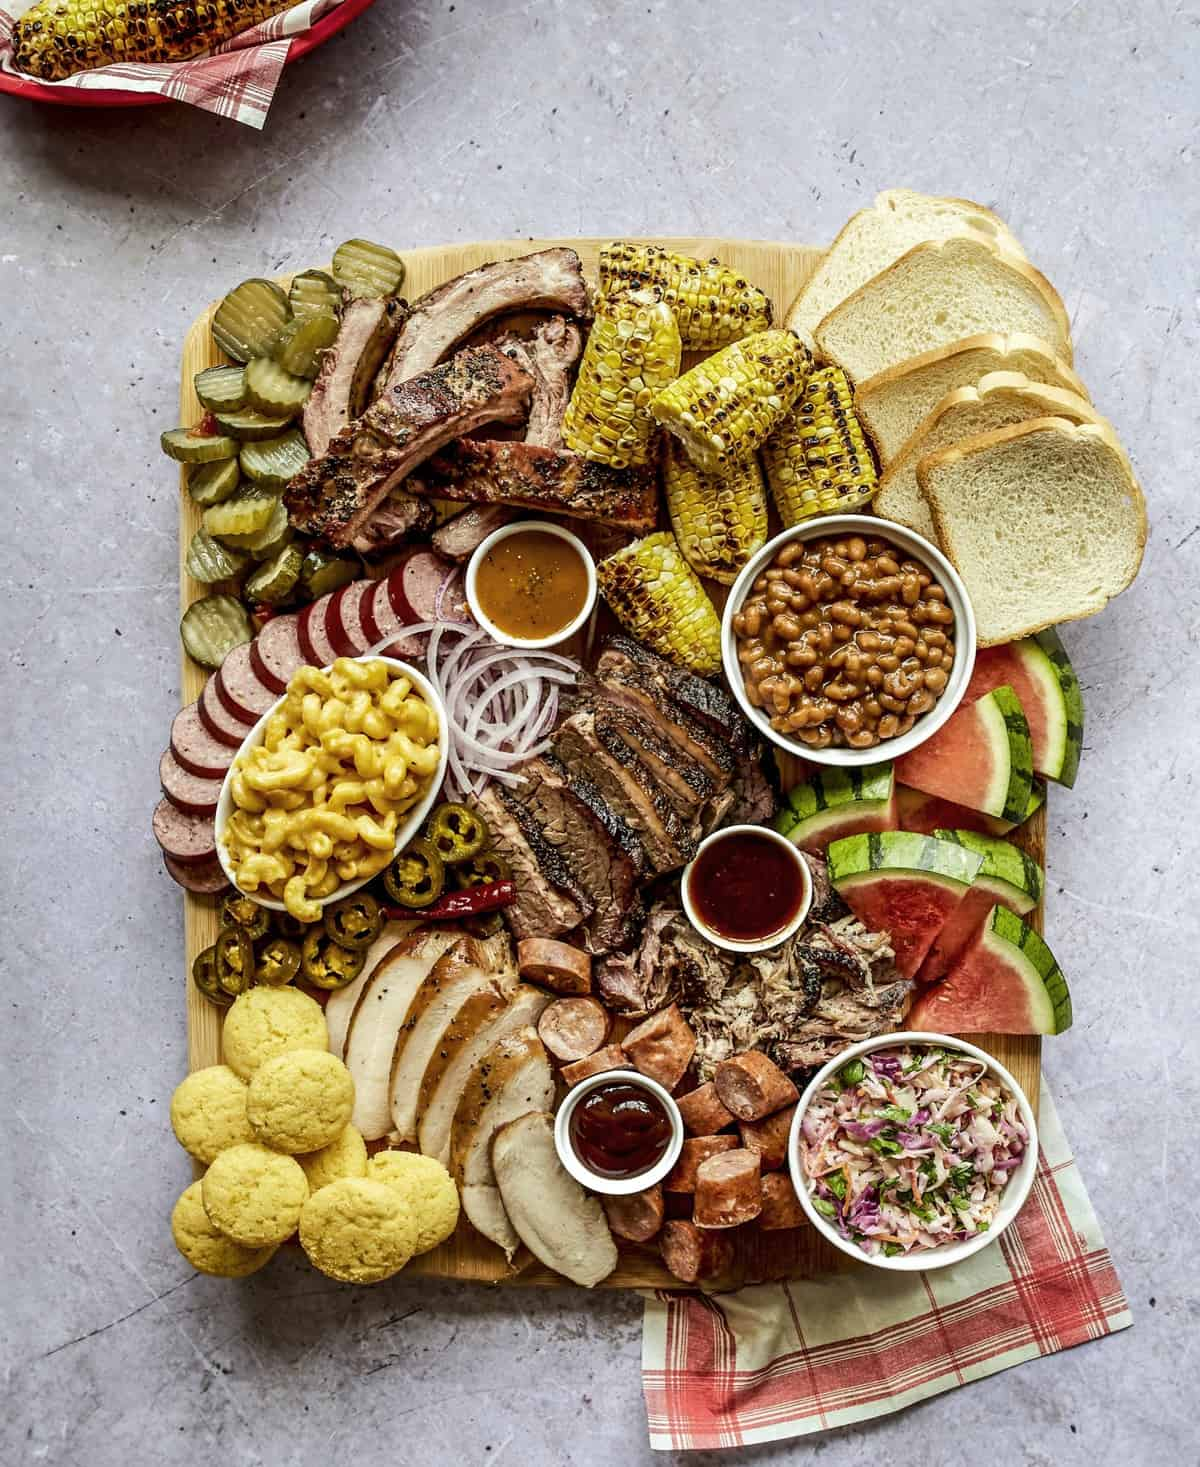 BBQ Board by The BakerMama